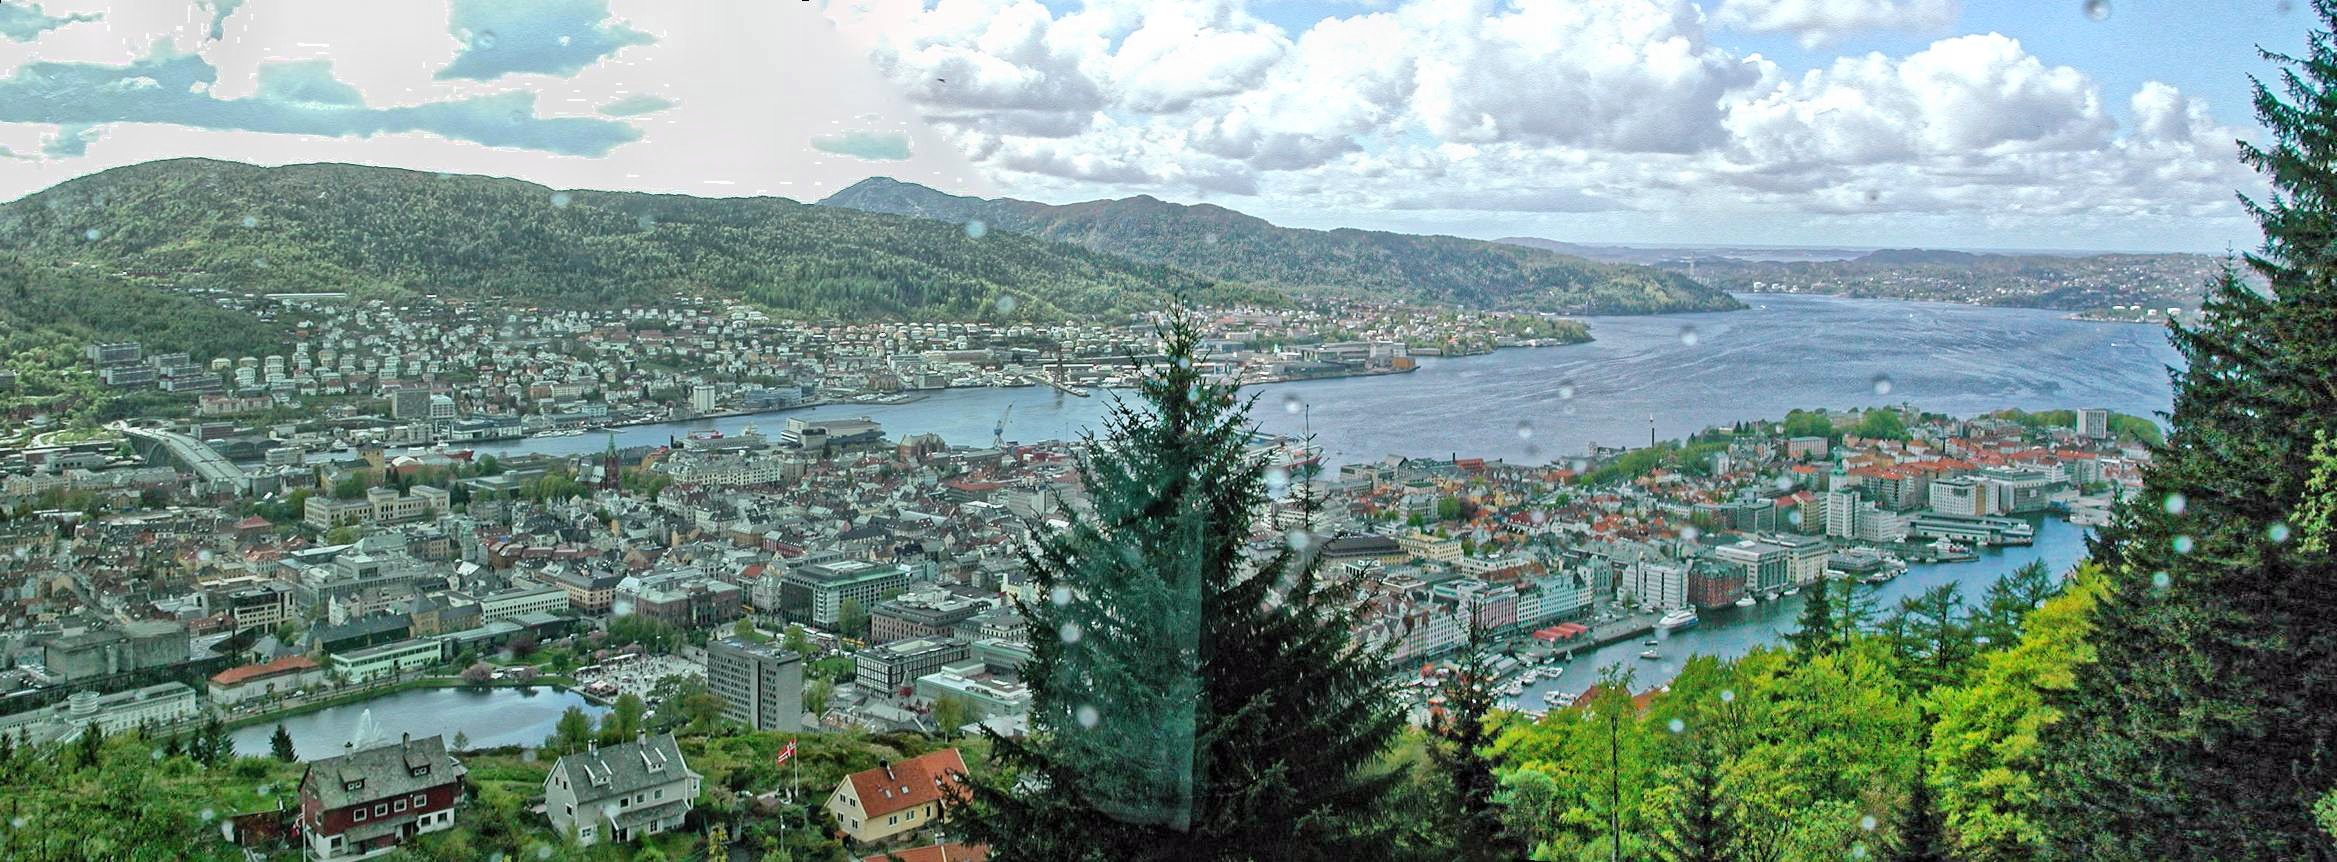 This should be Bergen-panorama-2.jpeg.  Is it missing?